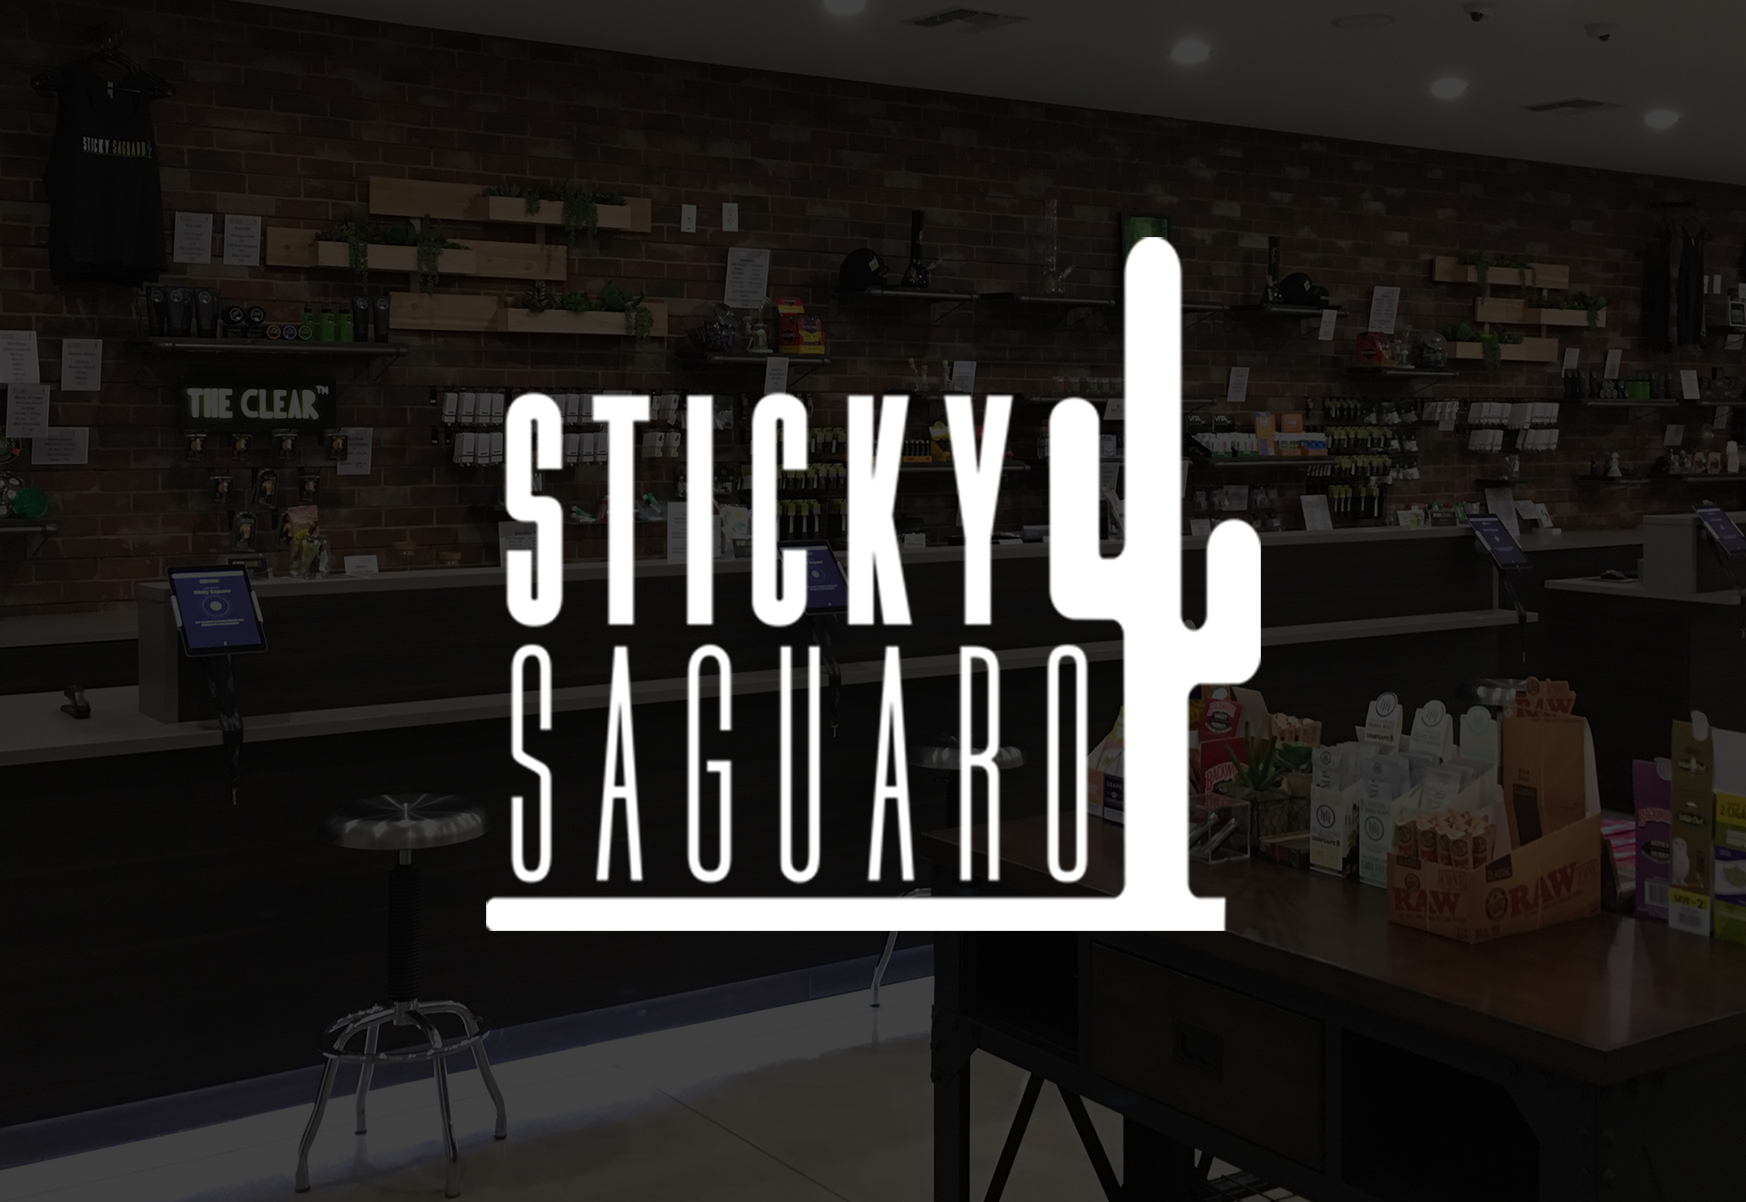 StickySaguaro_Locations.jpg